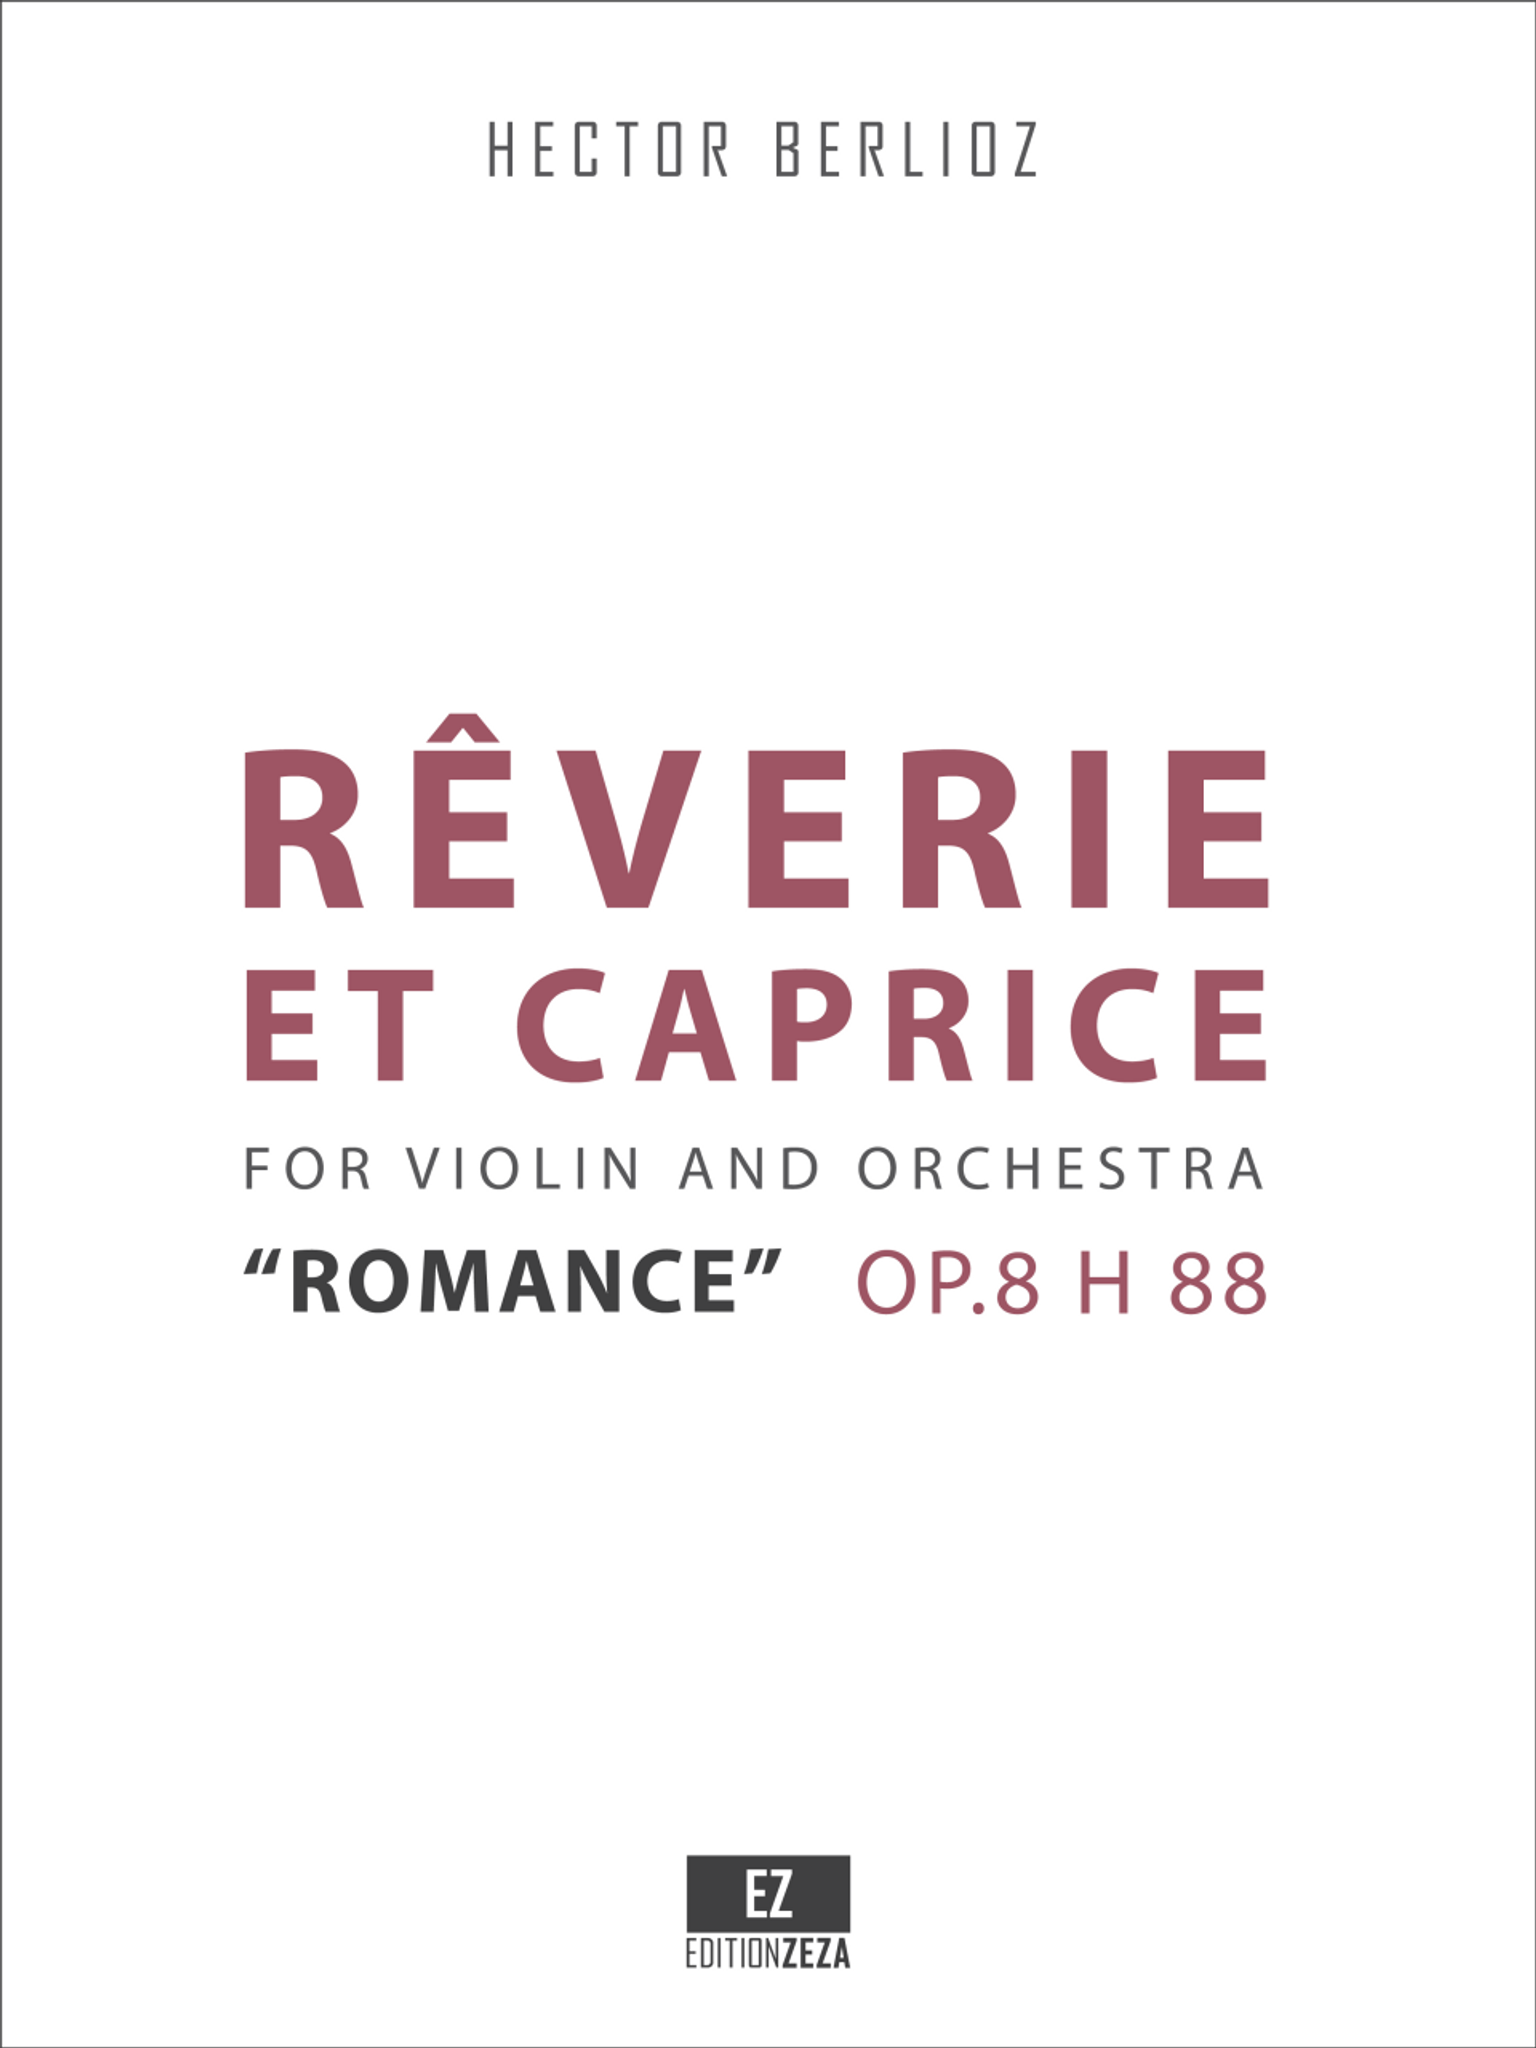 Berlioz - Reverie et Caprice, Romance for Violin and Orchestra Op 8 H 88